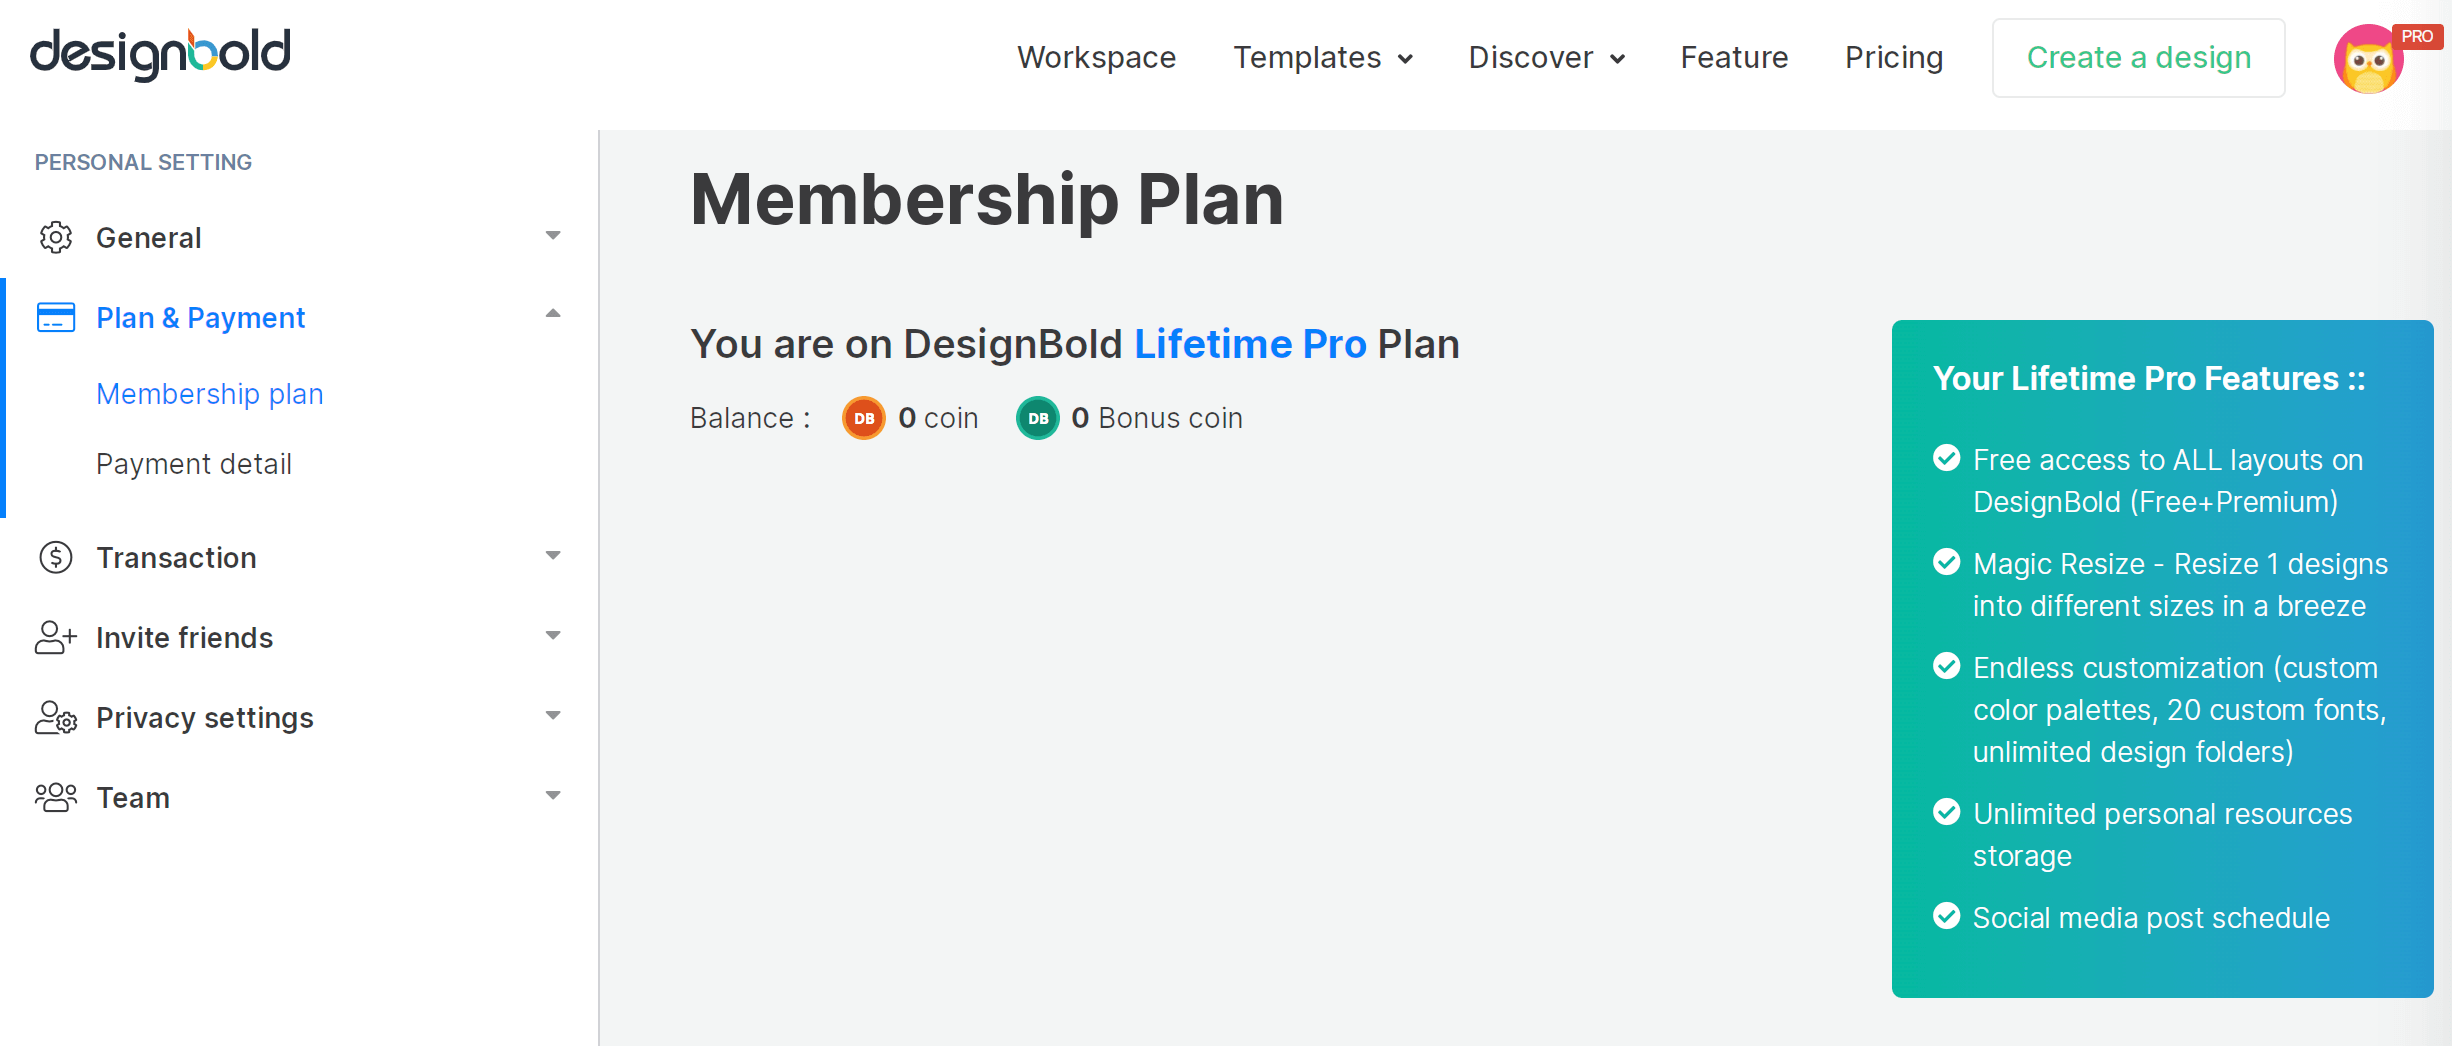 designbold plan - design tools for marketers